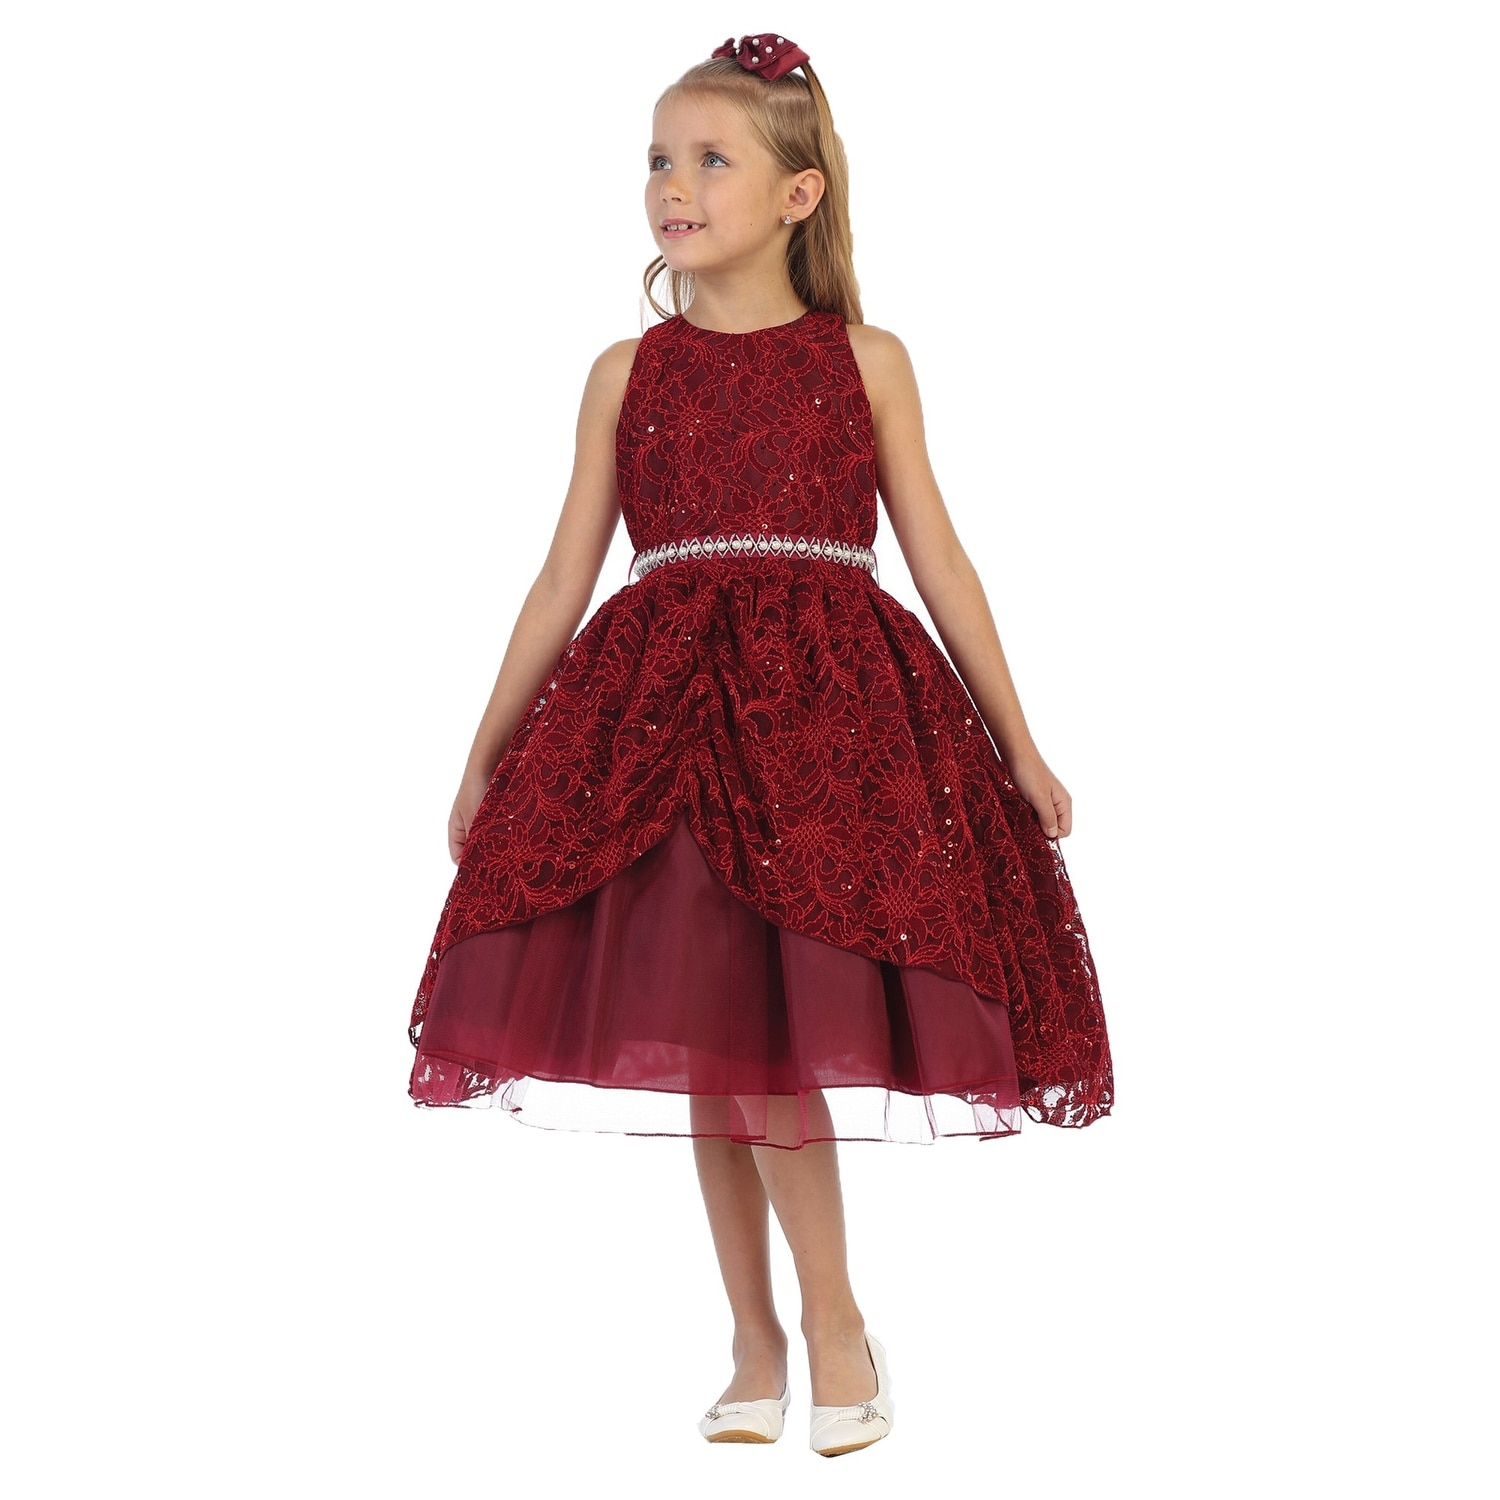 36078c10c416 Shop Chic Baby Girls Burgundy Lace Sequins Pearl Christmas Dress ...